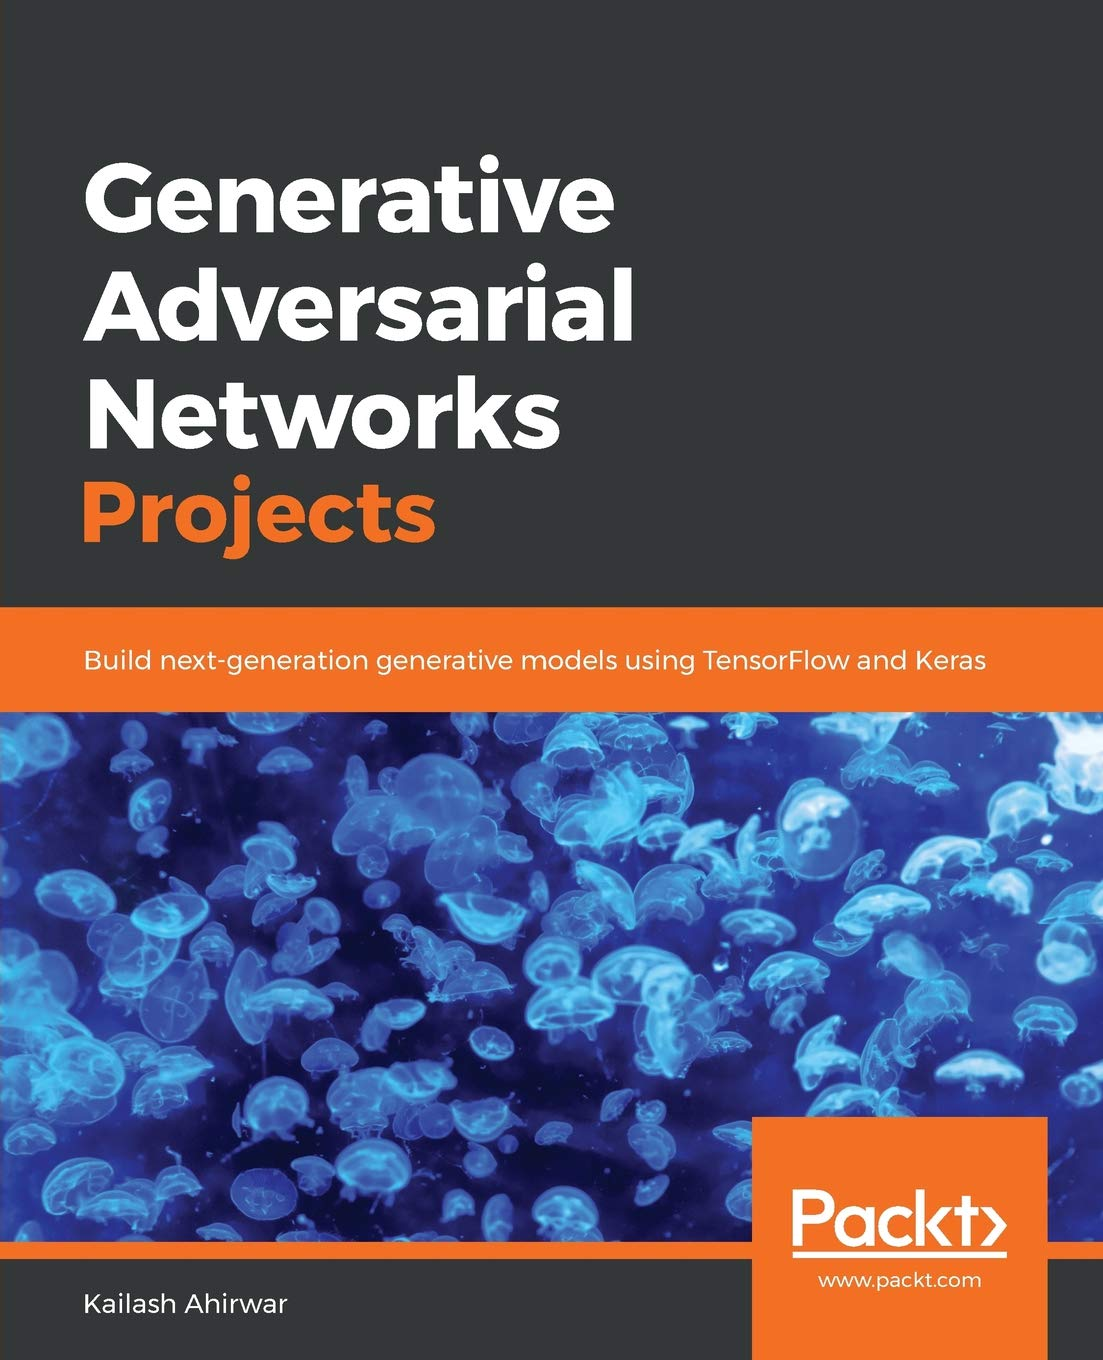 Generative Adversarial Networks Projects: Build next